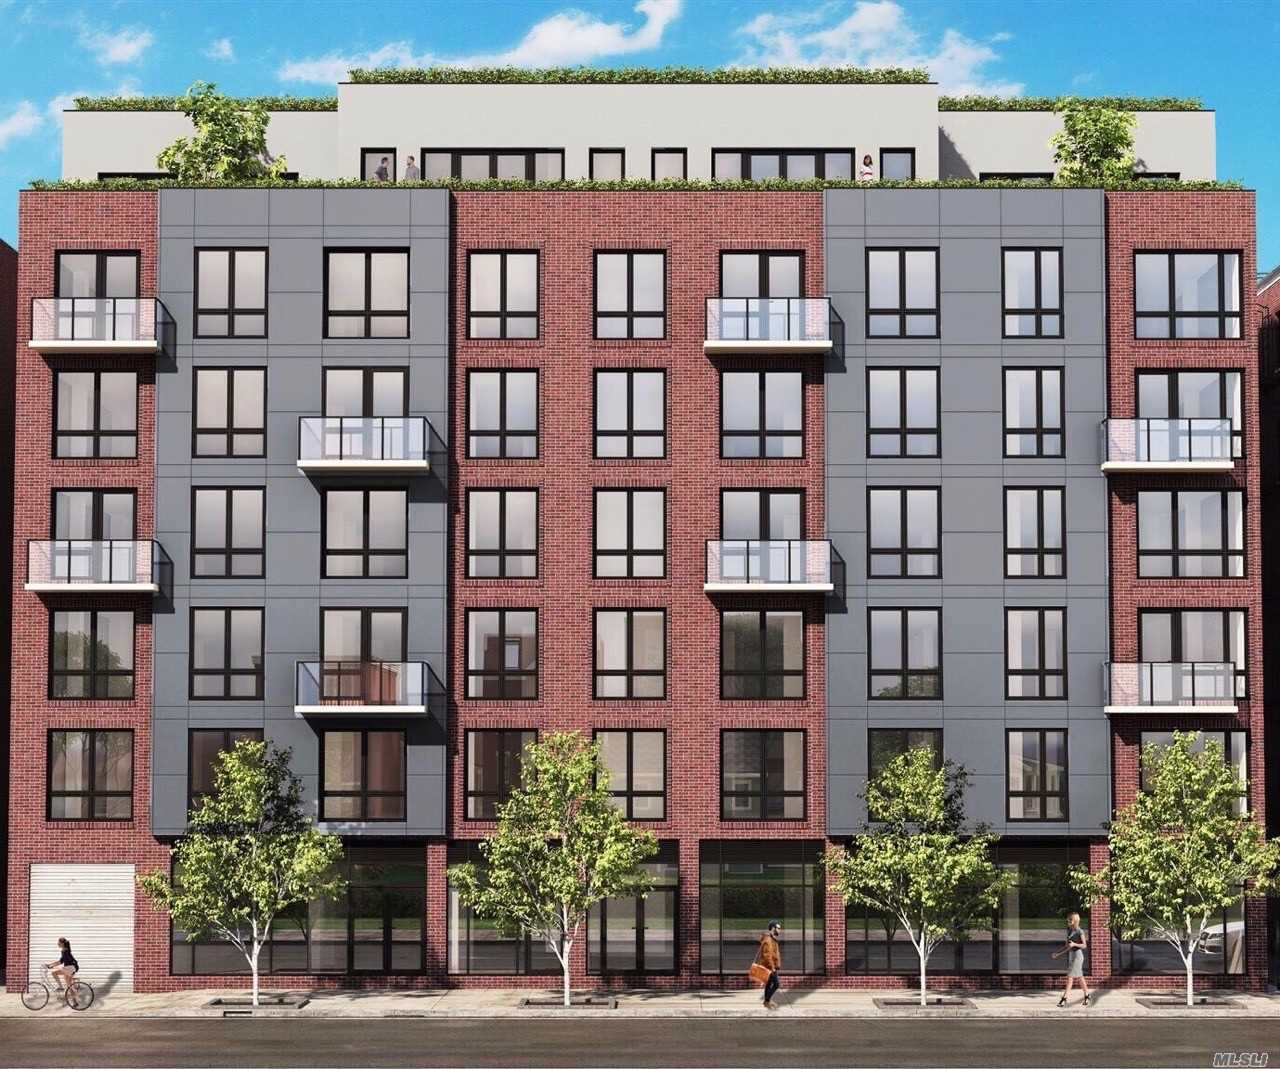 Stunning 1 bed with home office, South-East facing unit. Great view with plenty of sunlight. Hardwood floors throughout, In unit washer/dryer and large kitchen great for entertaining. Close to transportation, shopping and entertainment. Nestled in the heart of Historic Forest Hills this unit has much to offer!